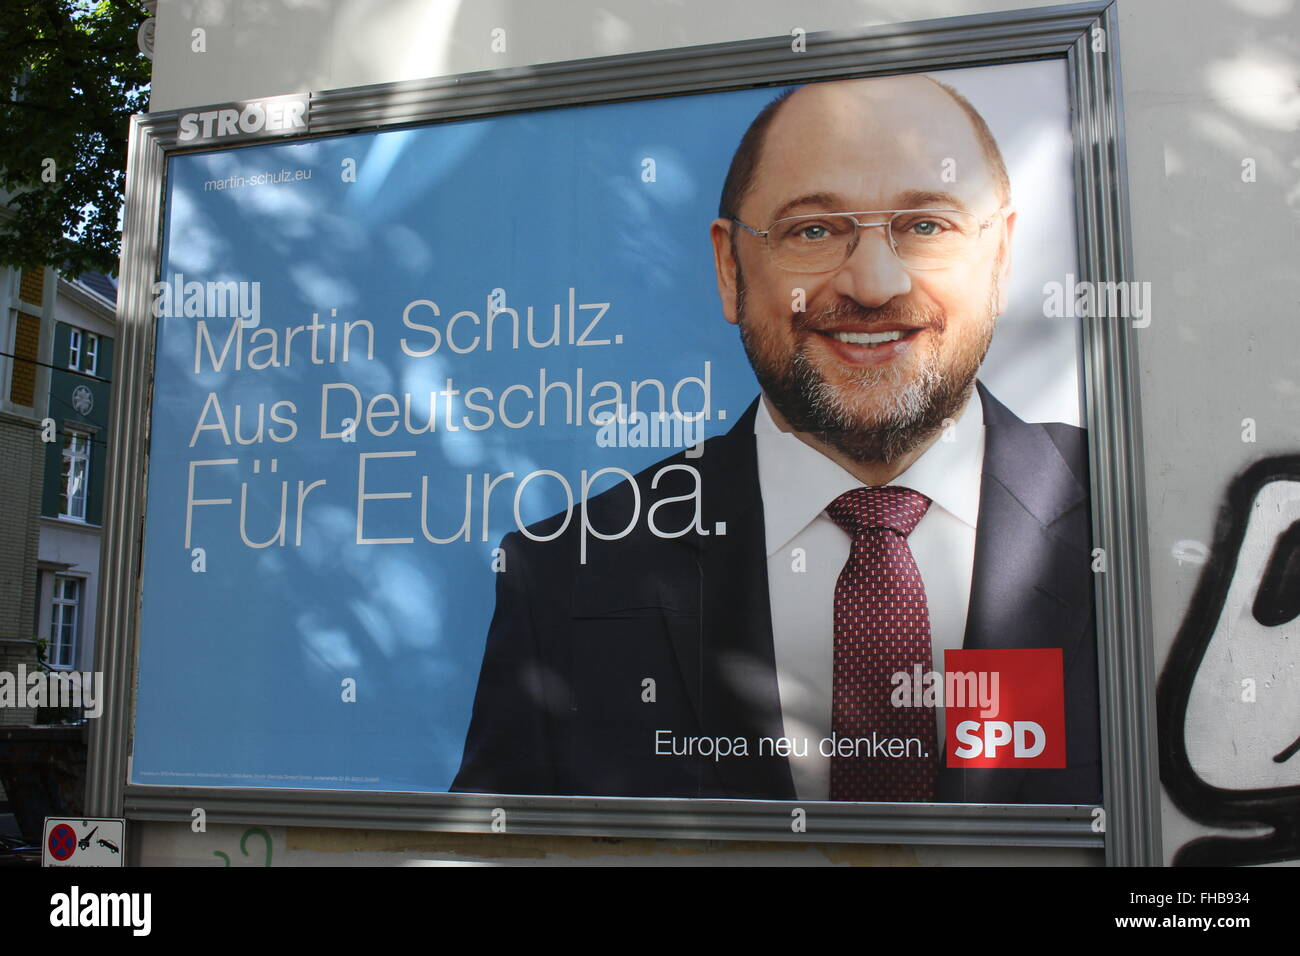 election poster with Martin Schulz, SPD at the Europe election, 2014 - Stock Image